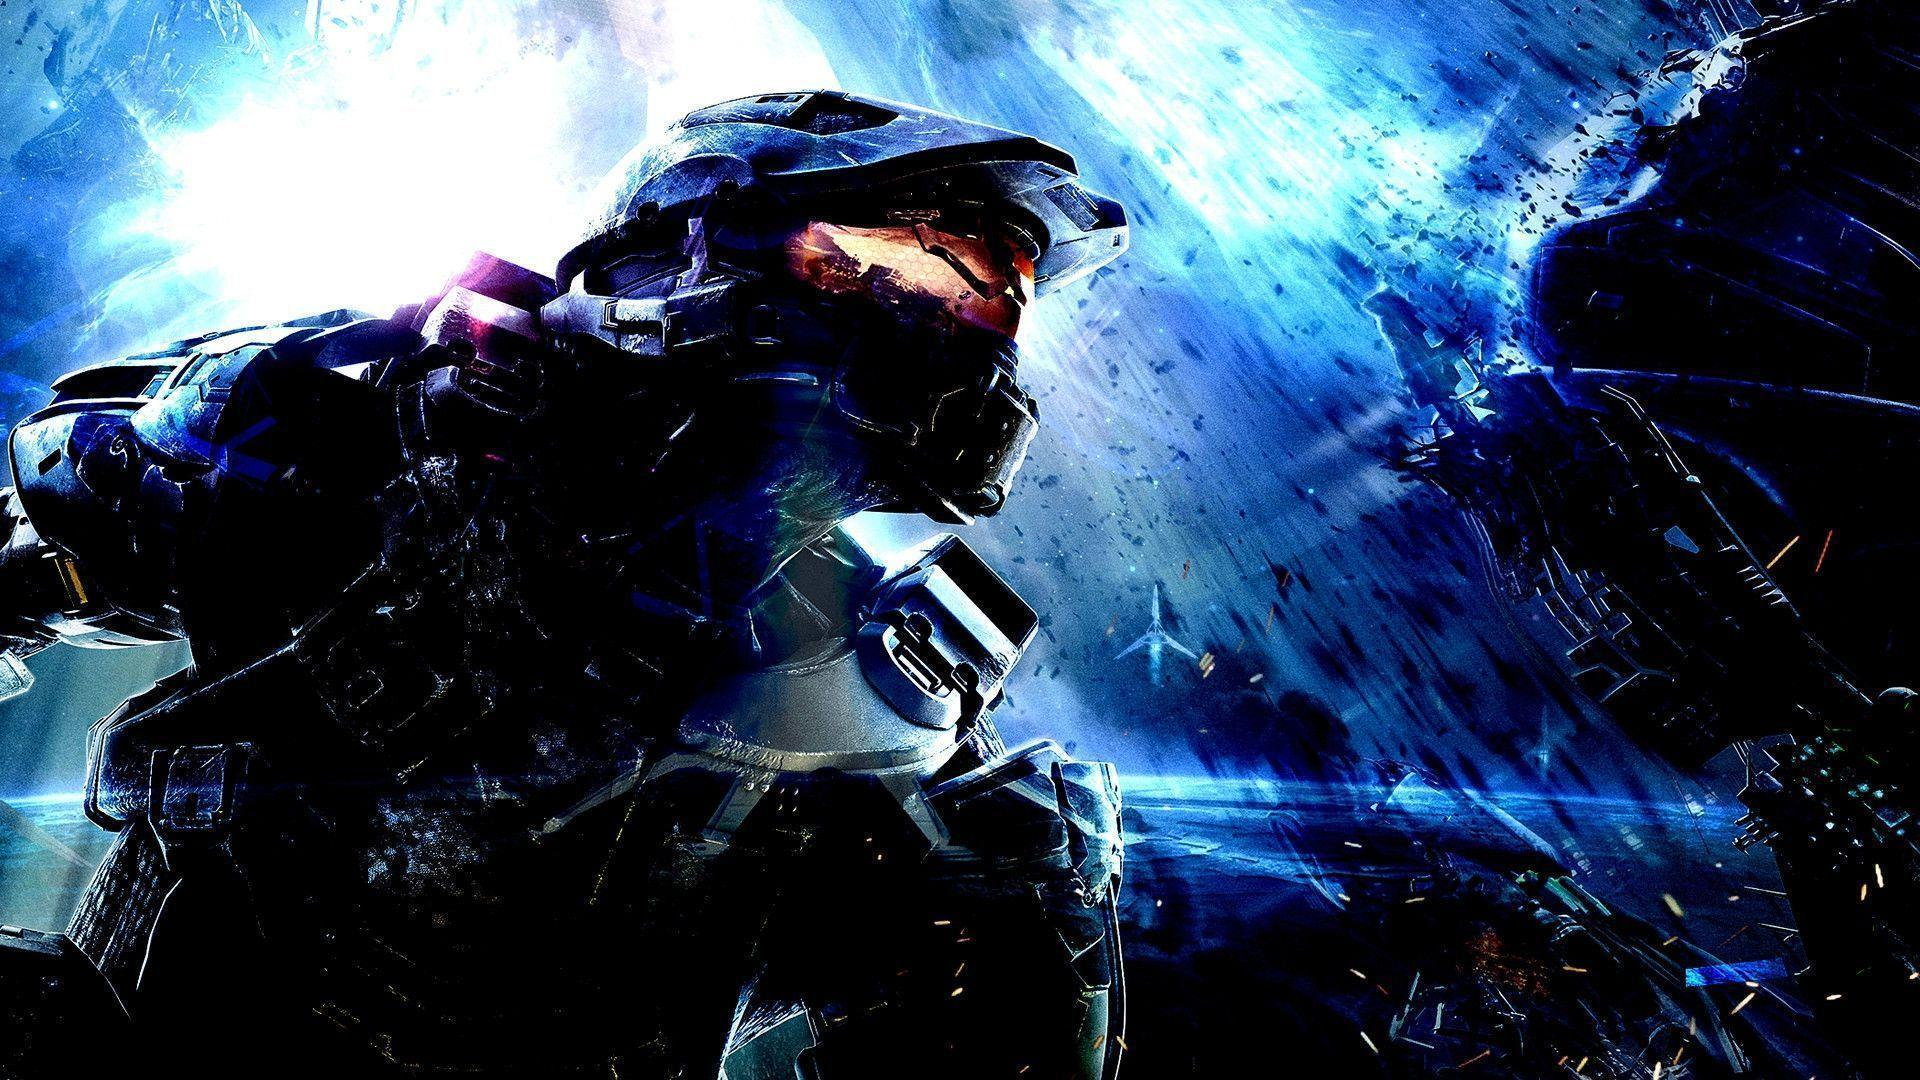 wallpaper free game halo - photo #3